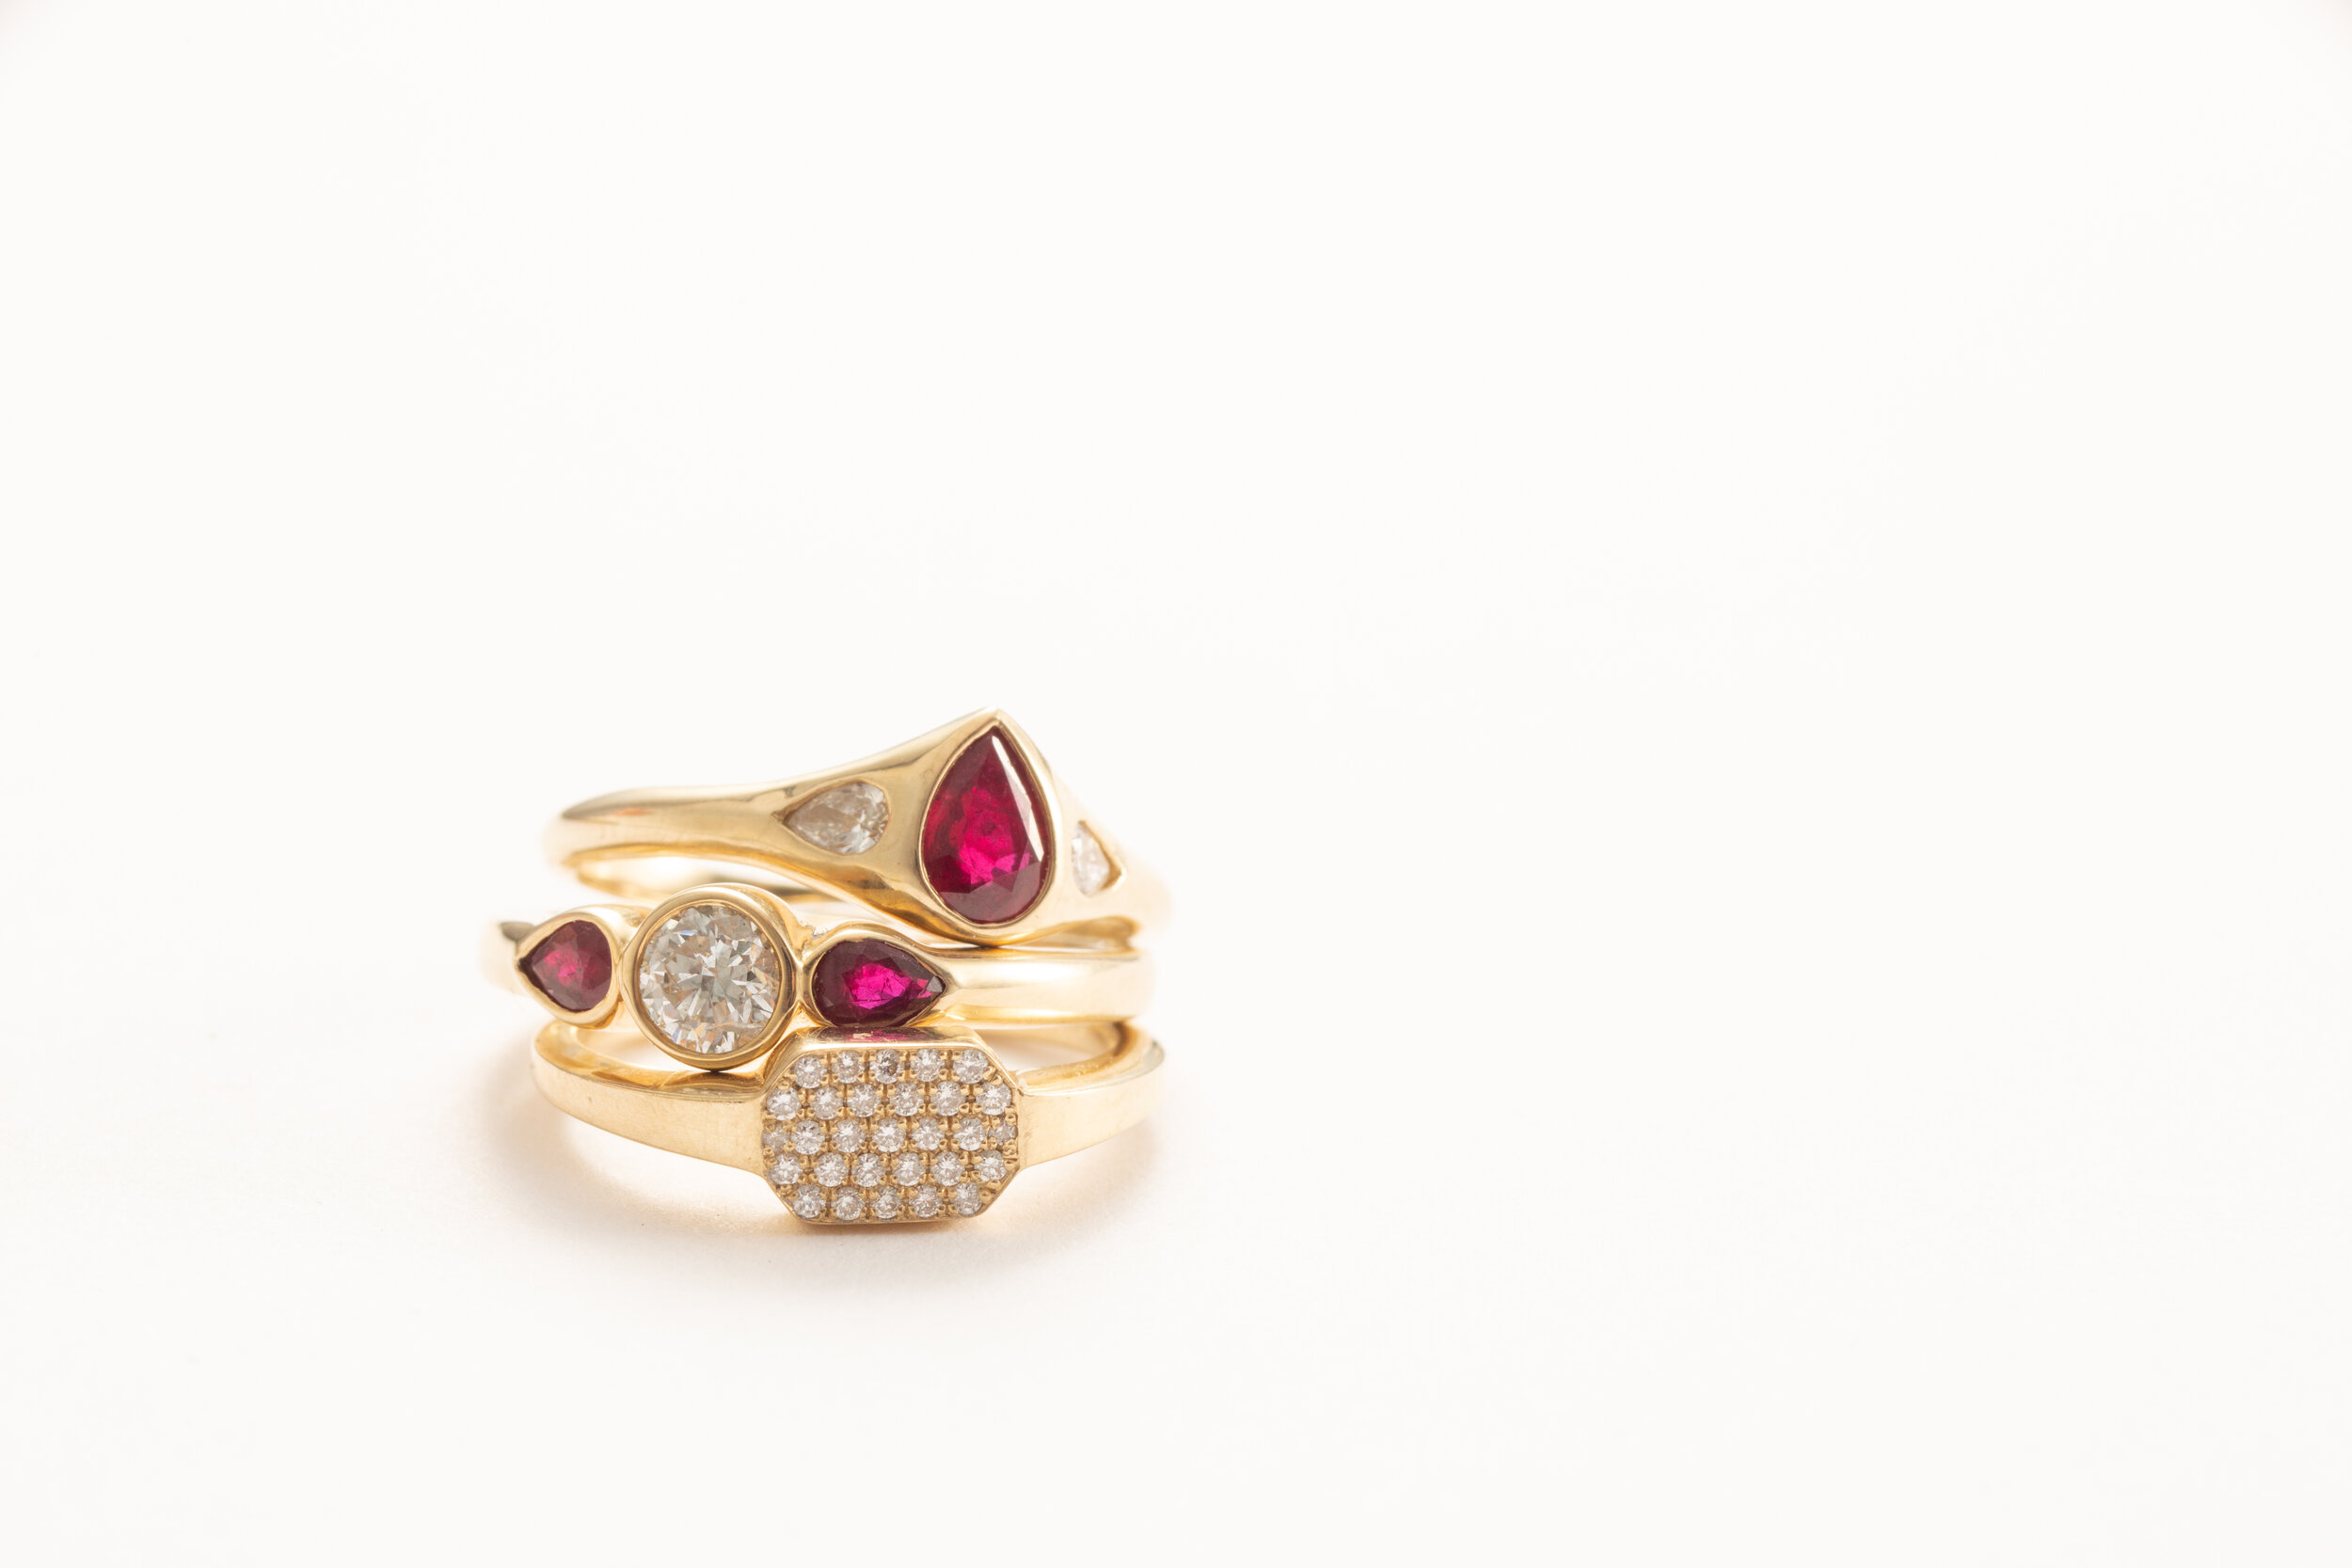 "#6 GIVE ETERNAL DEVOTION - ""Some favorites for engagement rings in a technicolor assortment of hues."" Forbes (featuring Ruby Julienne)"